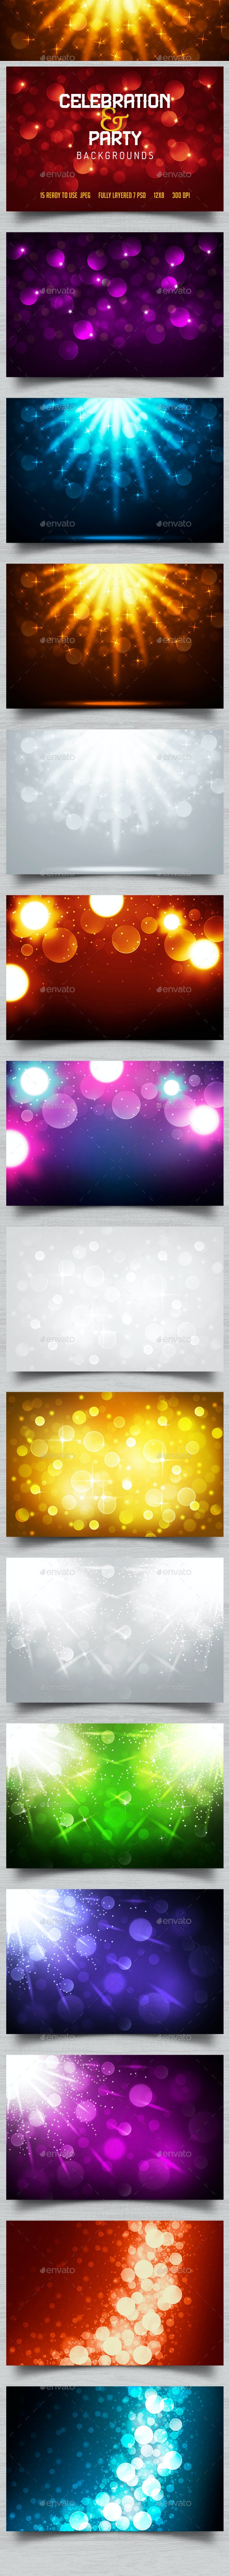 Party & Celebration Backgrounds - Backgrounds Graphics